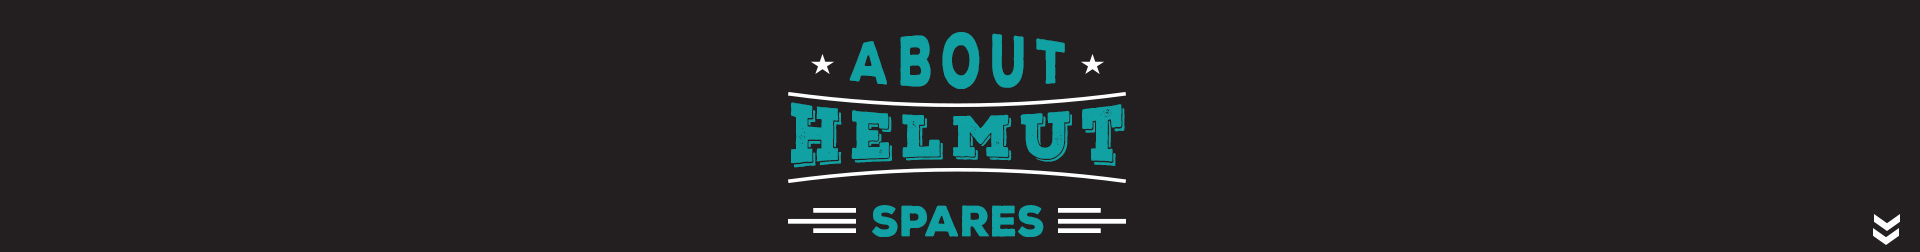 about-helmut-spares-banner.jpg